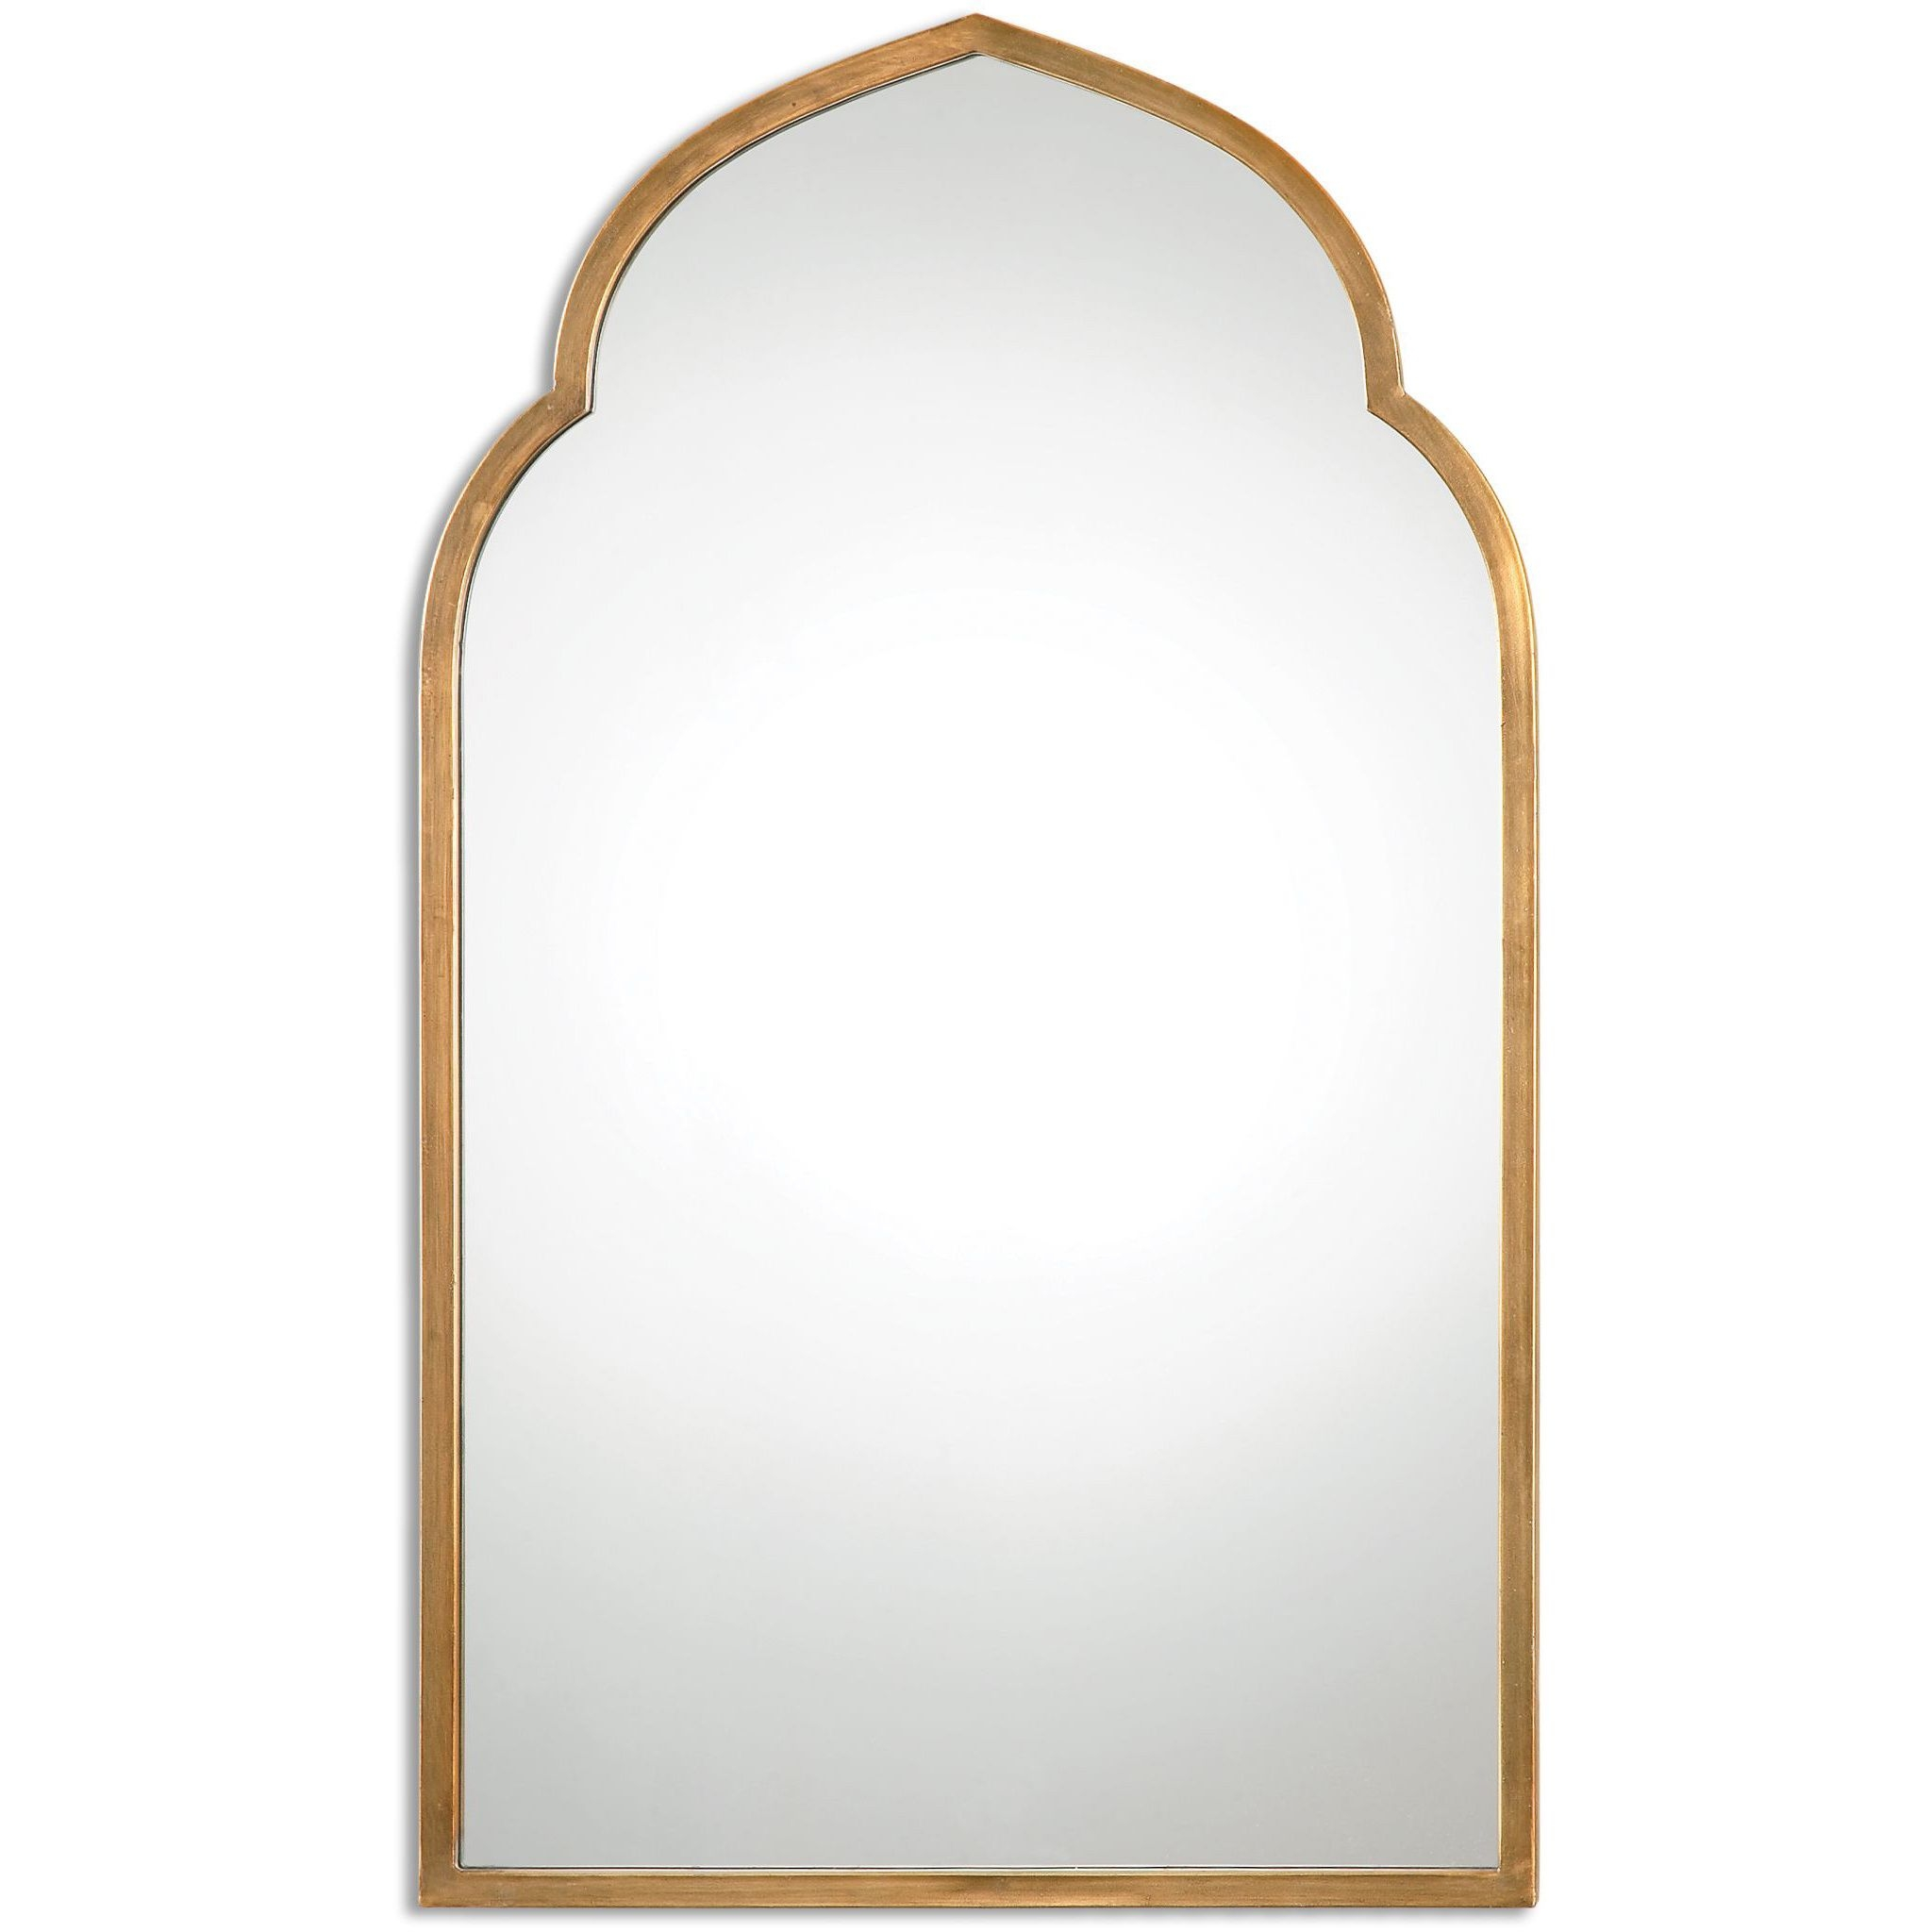 Uttermost Kenitra Gold Arch Decorative Wall Mirror Uttermost For Arched Mirrors Bathroom (View 10 of 15)